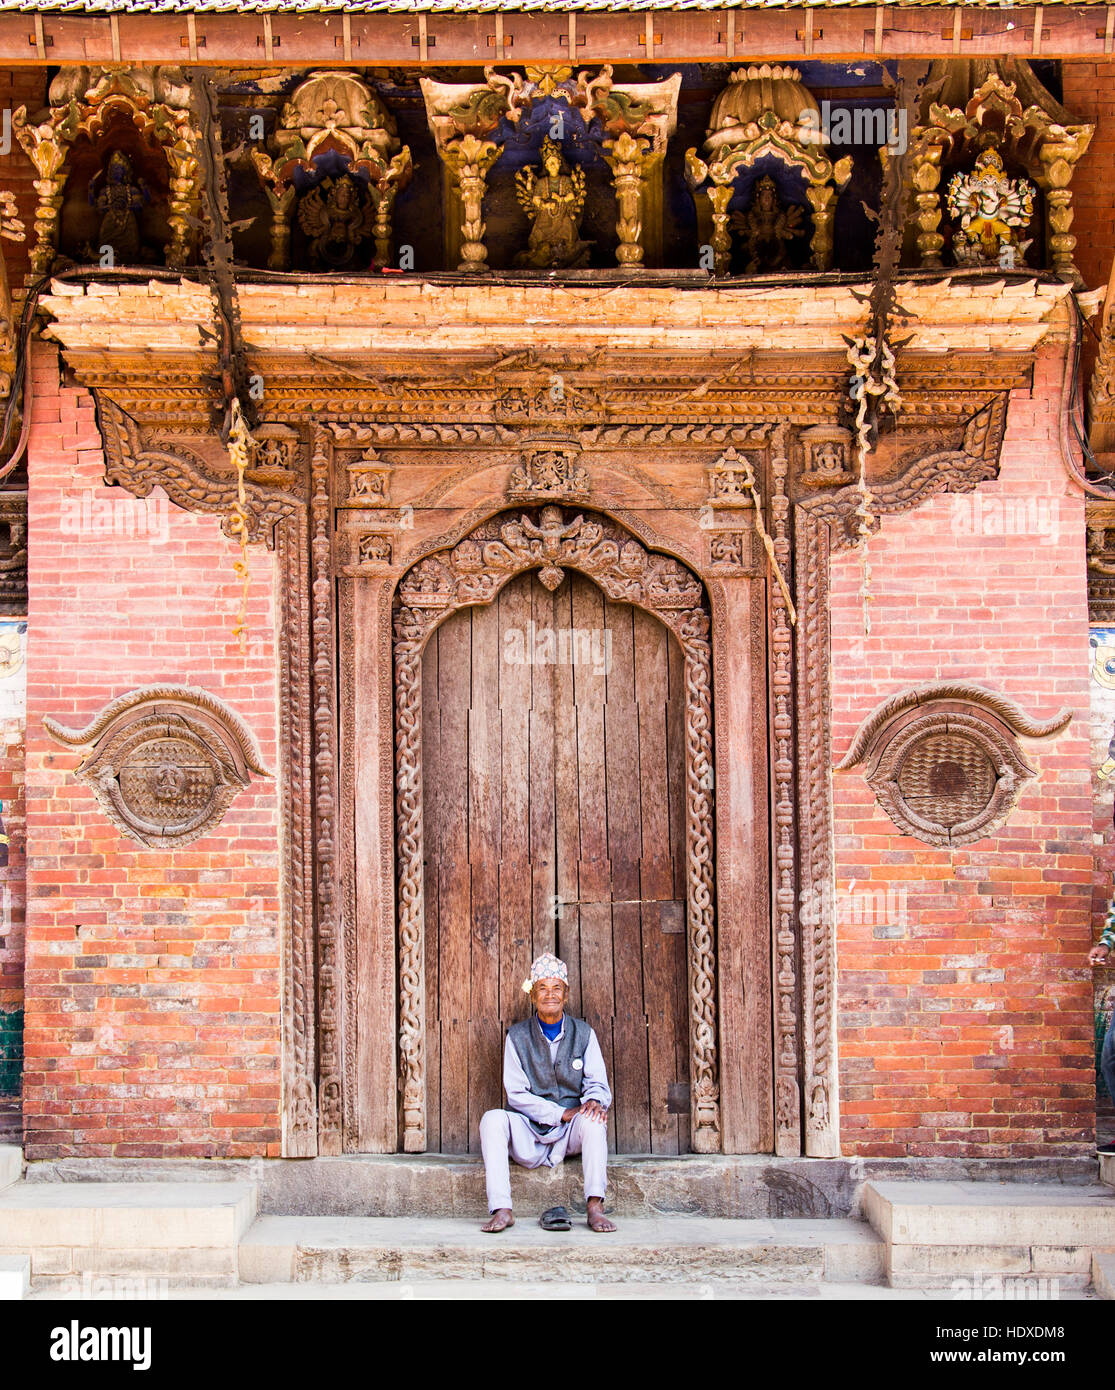 Elderly man in Patan Durbar Square, Nepal - Stock Image